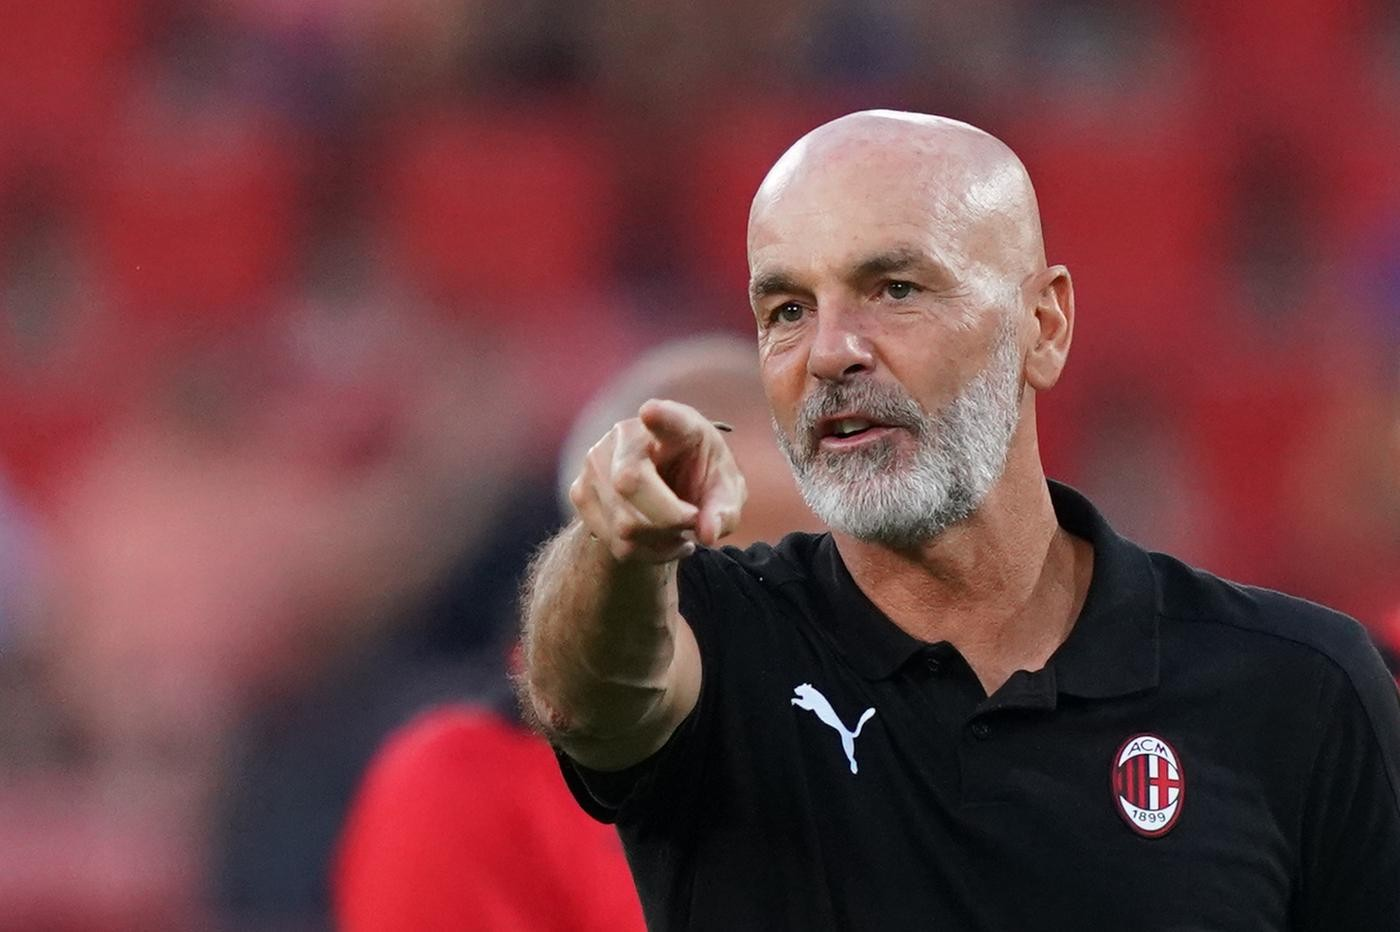 """PIOLI: """"WE'LL WRITE OUR OWN STORY IN THE CHAMPIONS LEAGUE"""""""